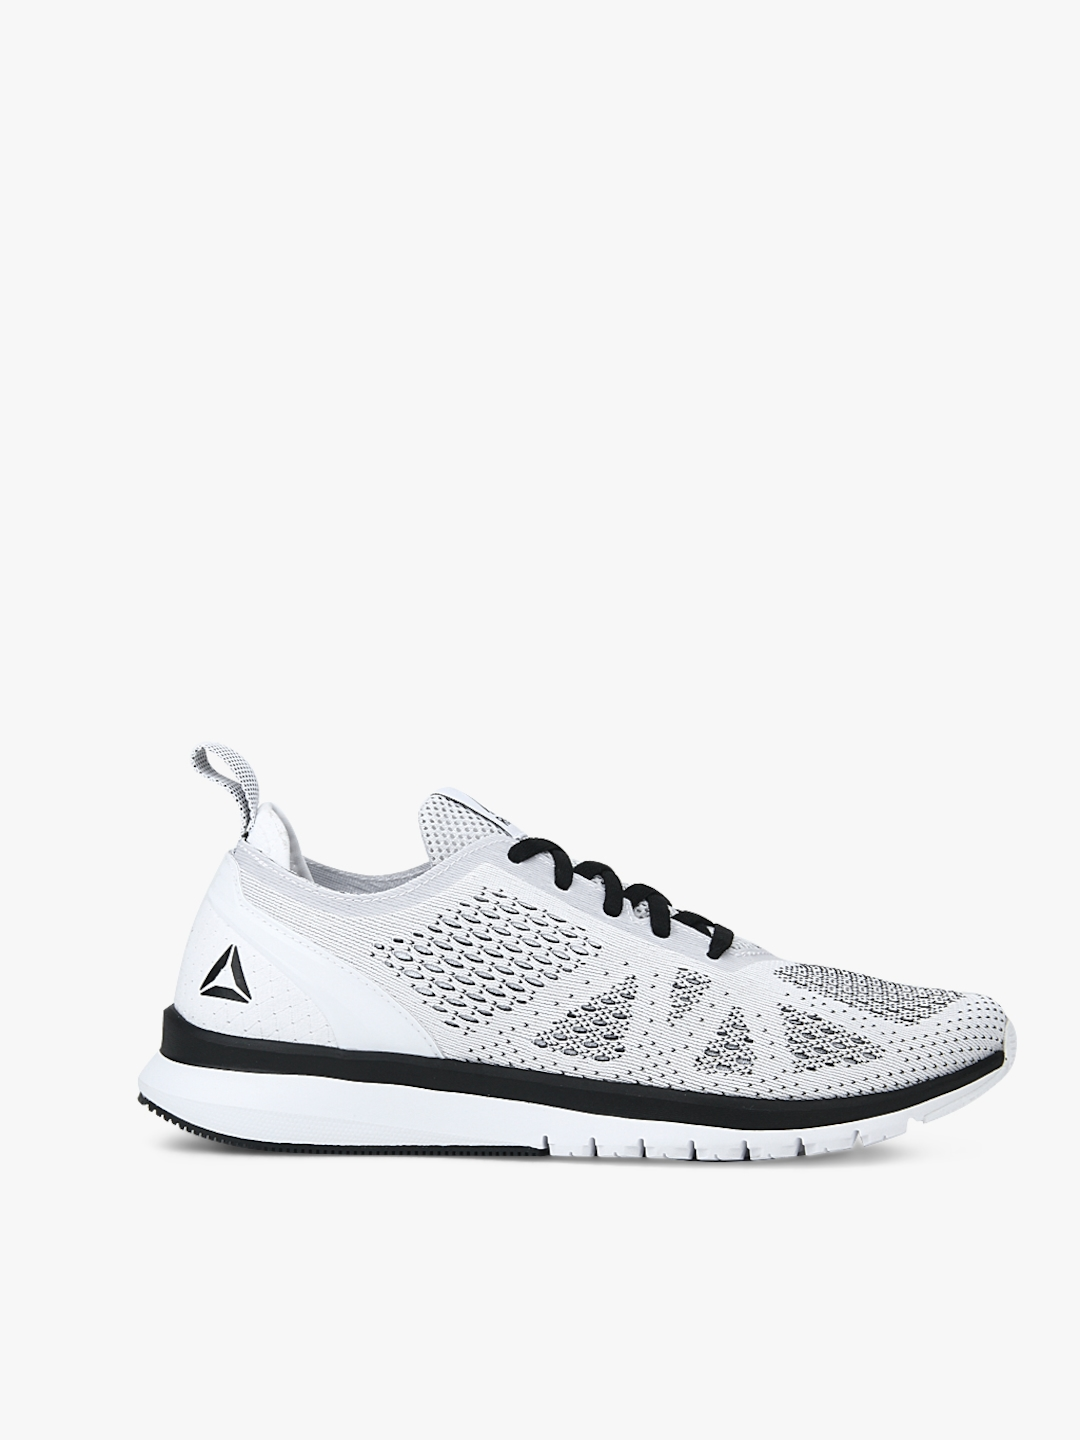 Buy Reebok Men White Printed Smooth Clip Ultk Running Shoes - Sports ... 042a3a85e